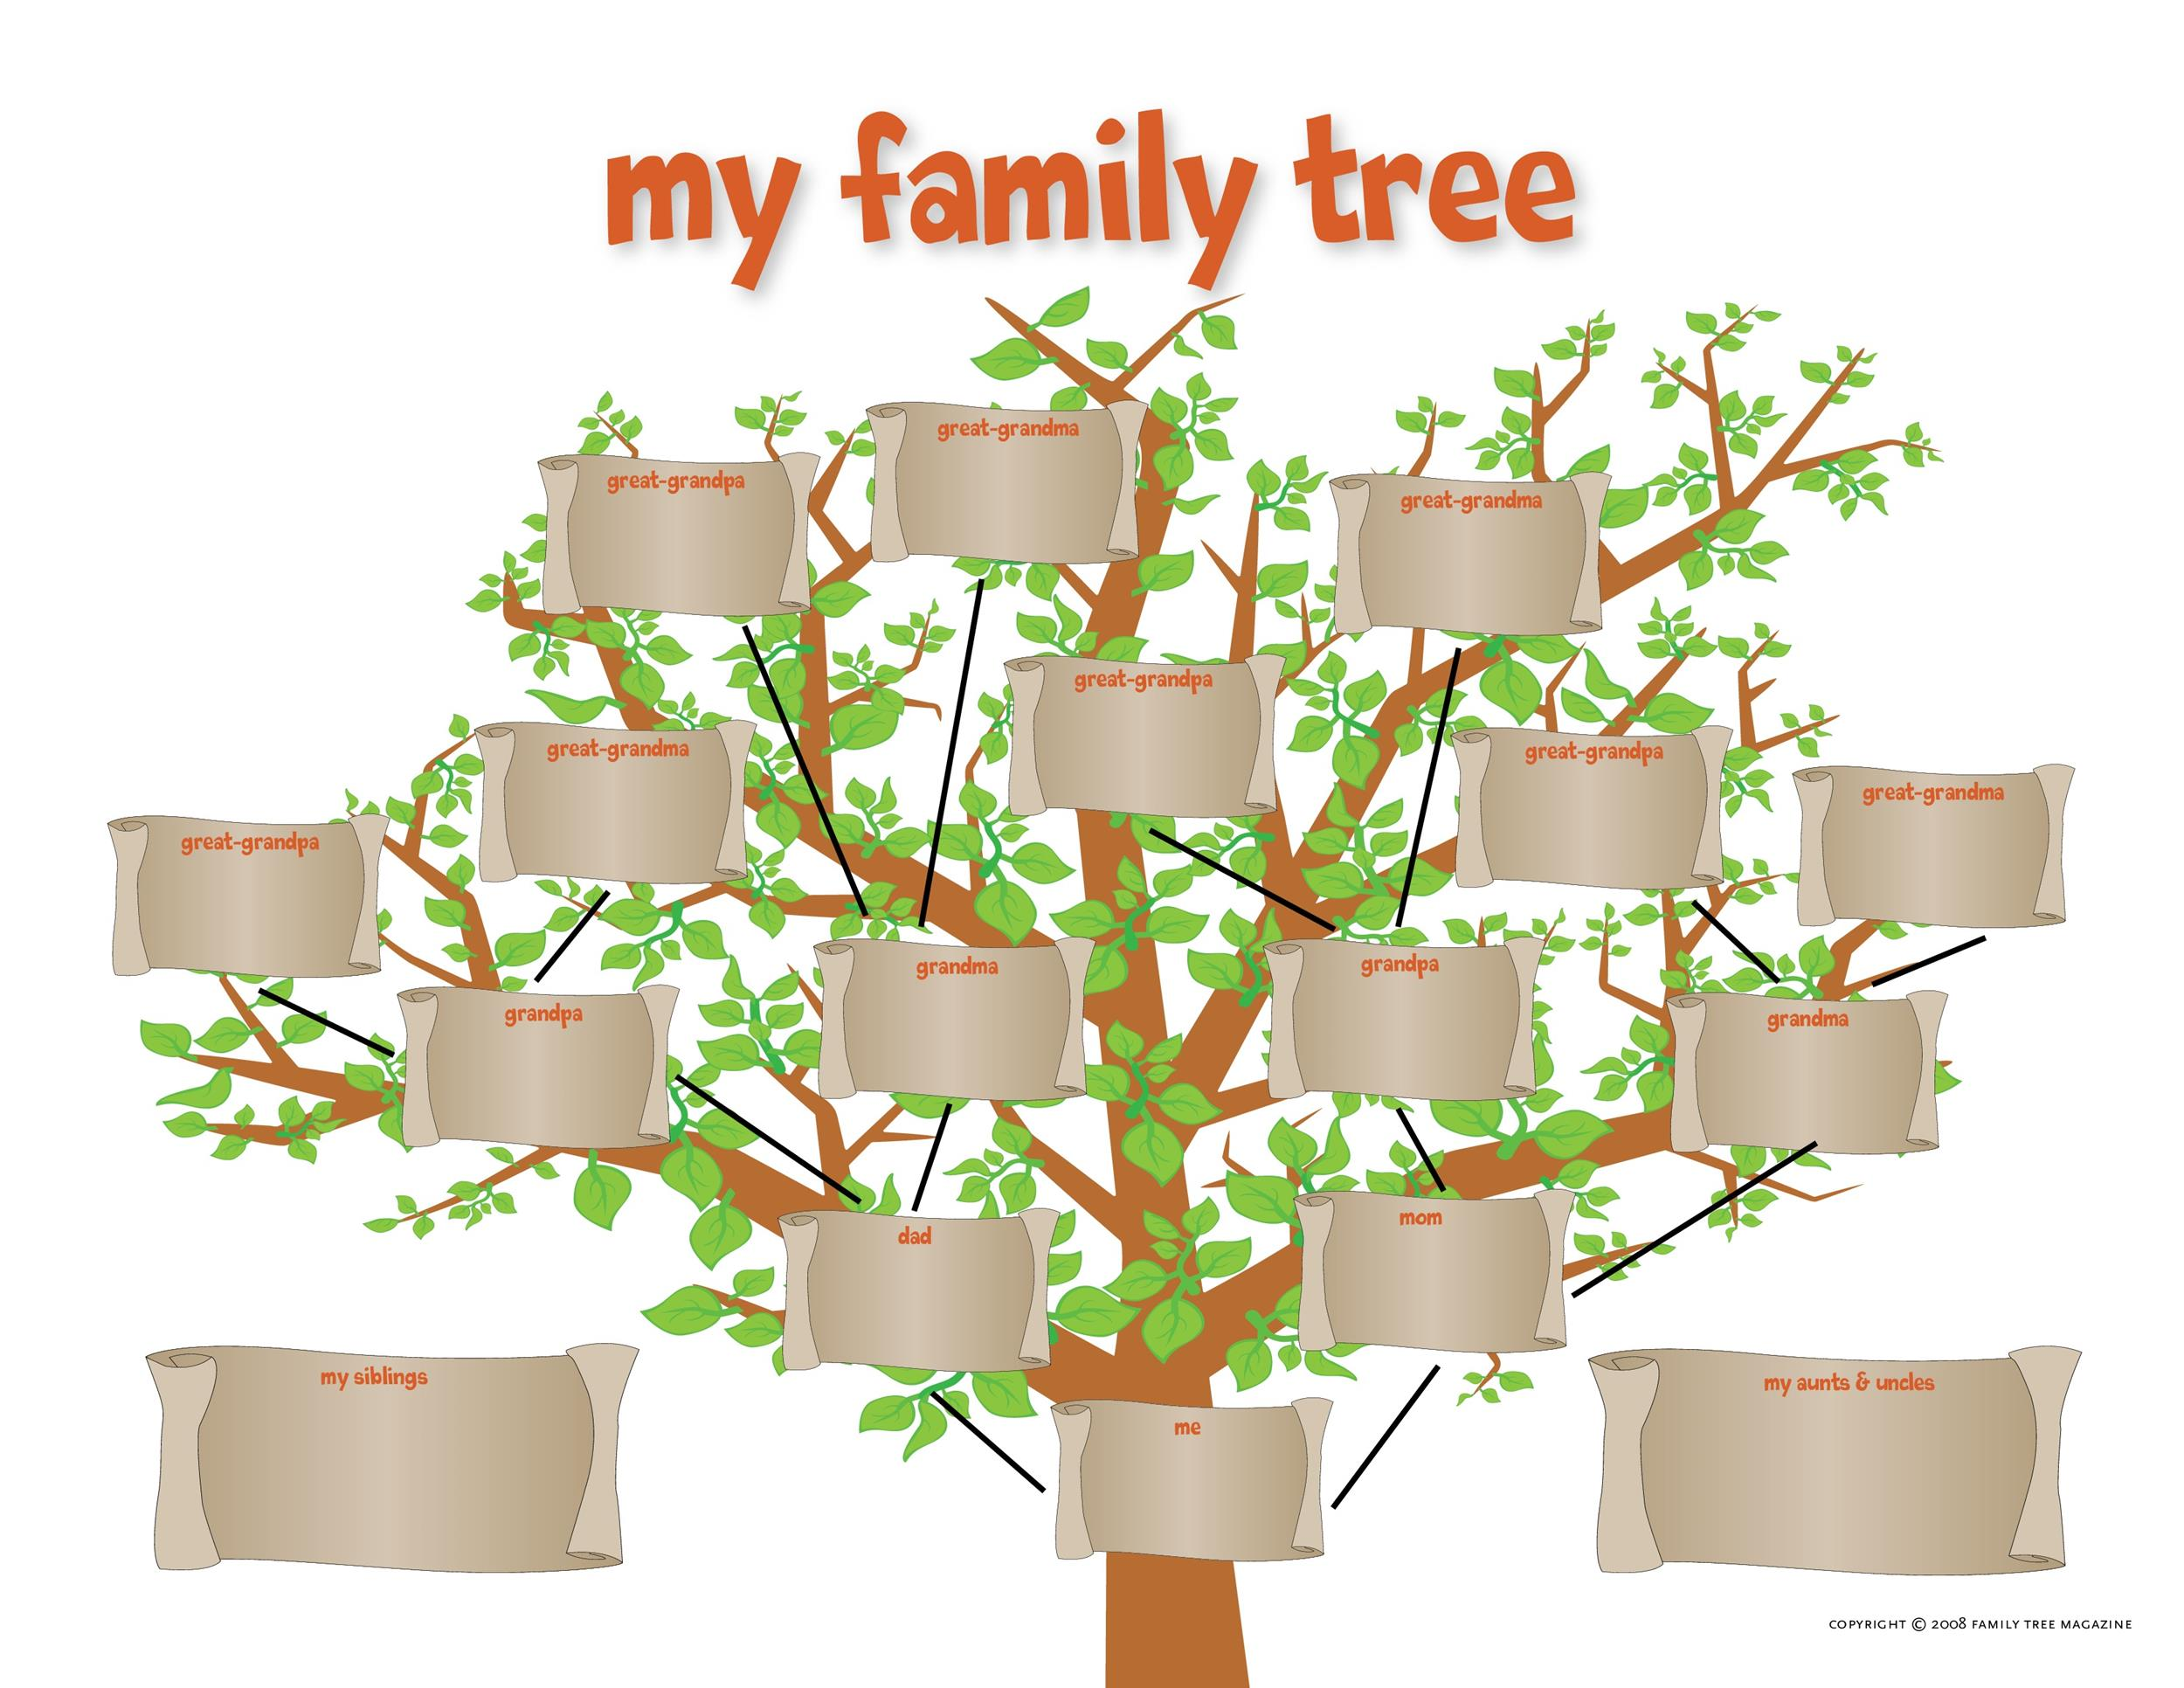 50 free family tree templates word excel pdf for Plain family tree template